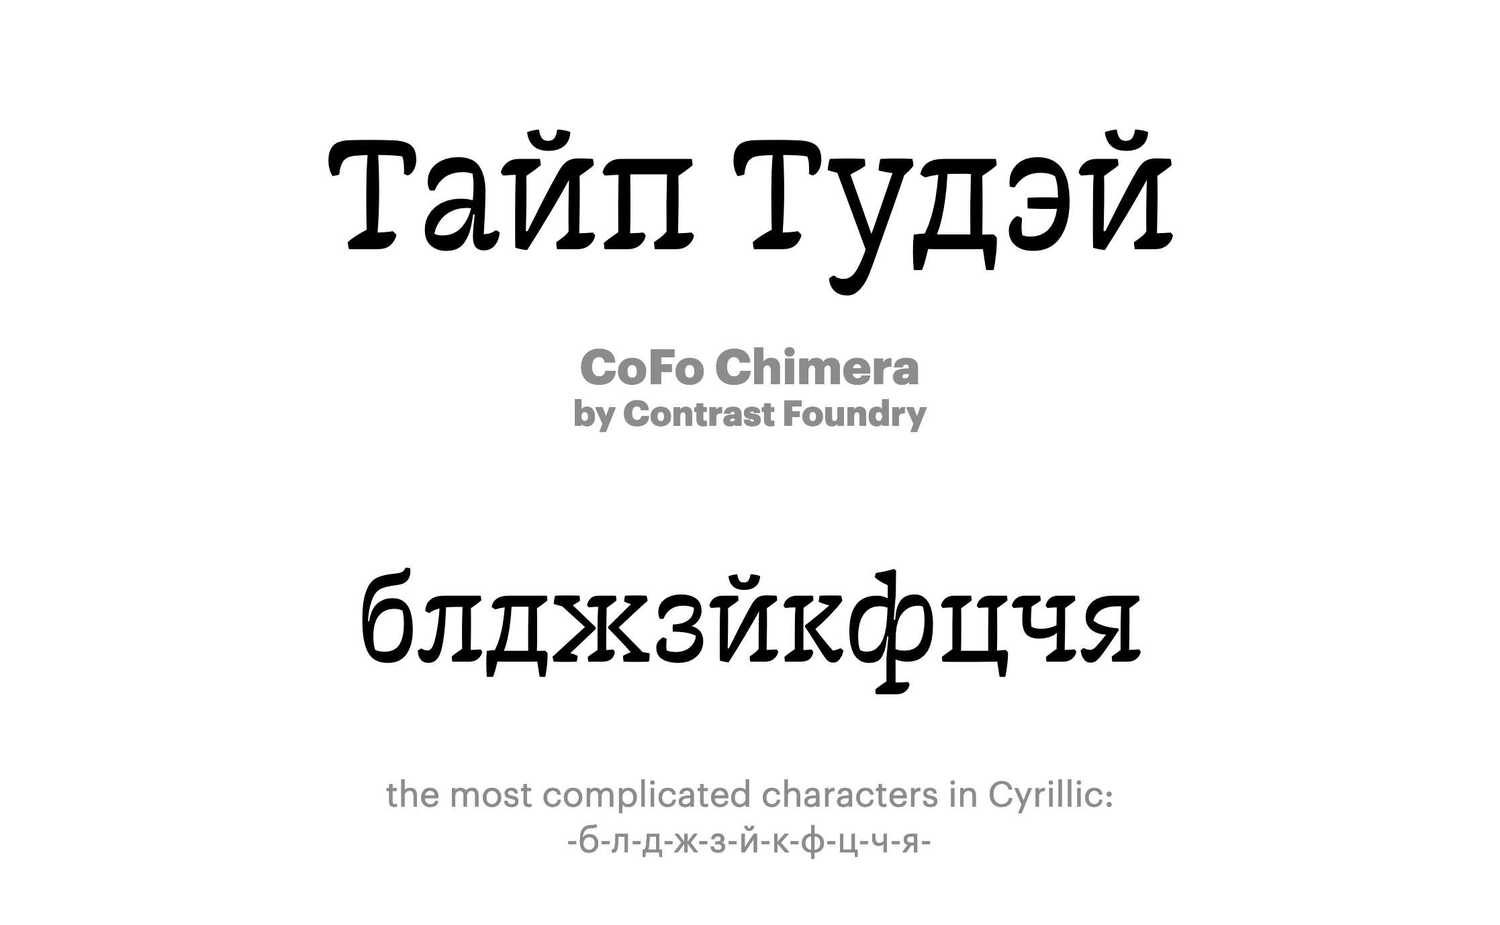 CoFo-Chimera-by-Contrast-Foundry